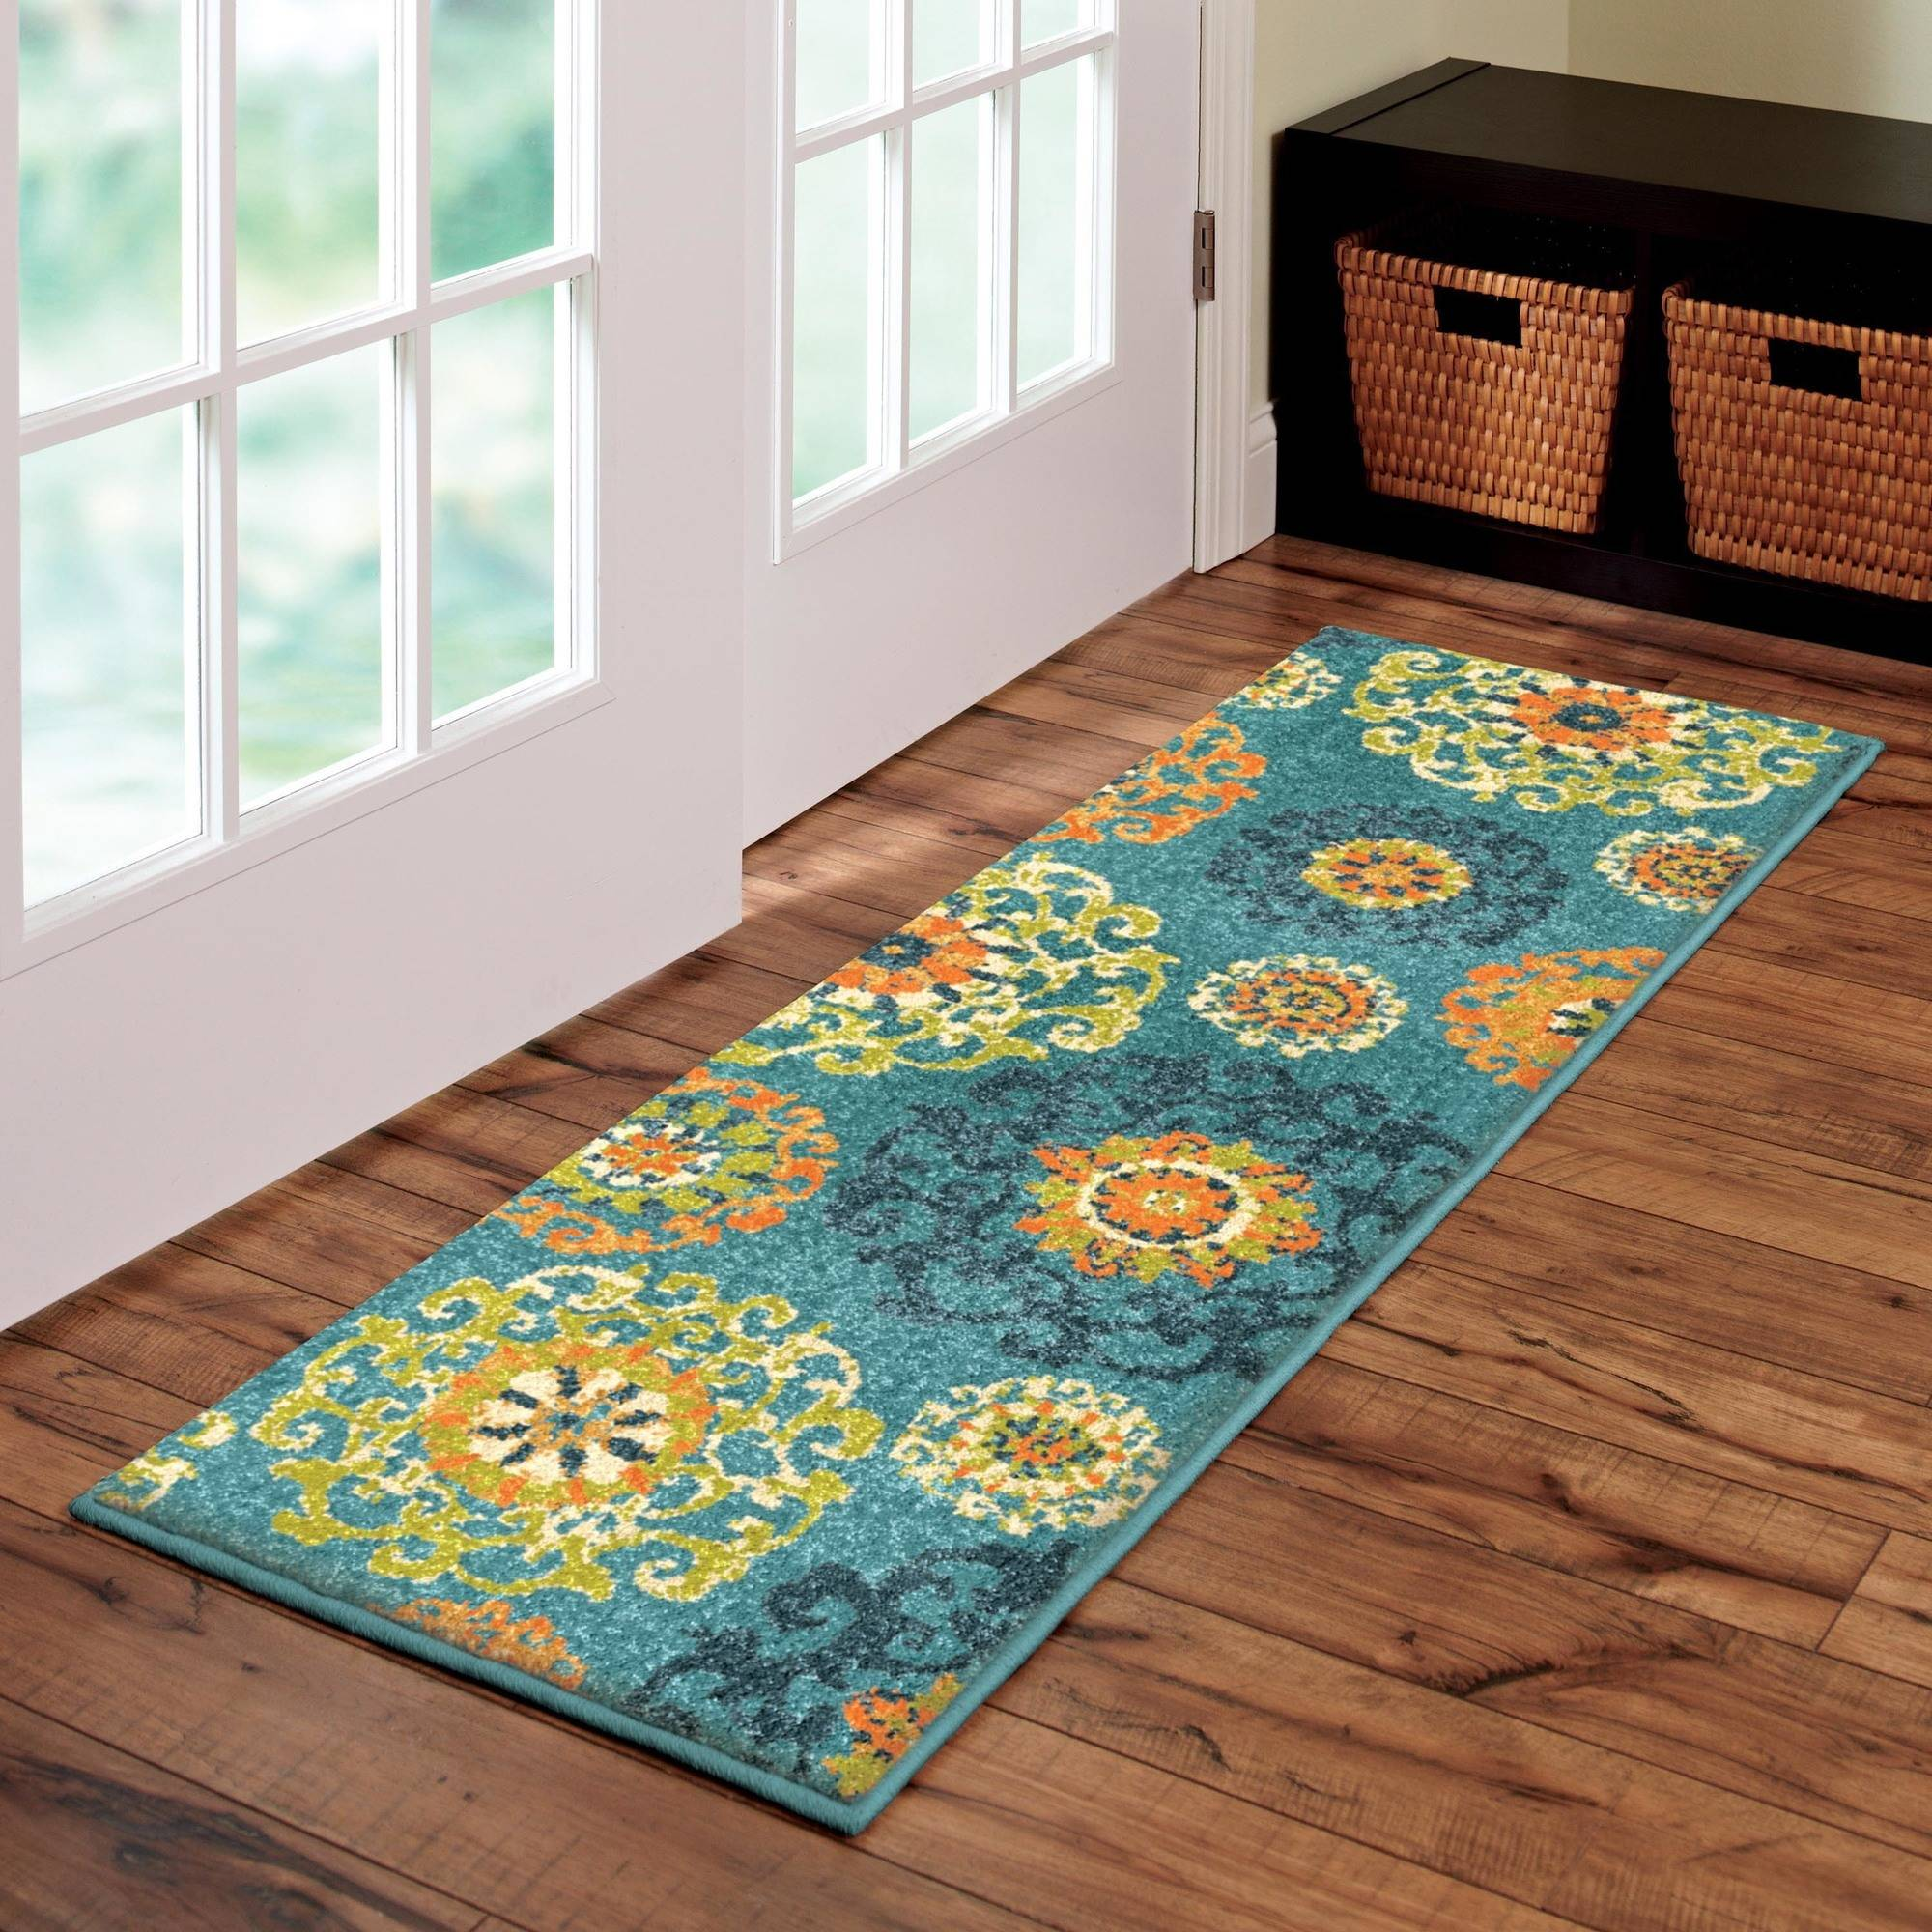 Better Homes and Gardens Suzani Area Rug or Runner by Orian Rugs